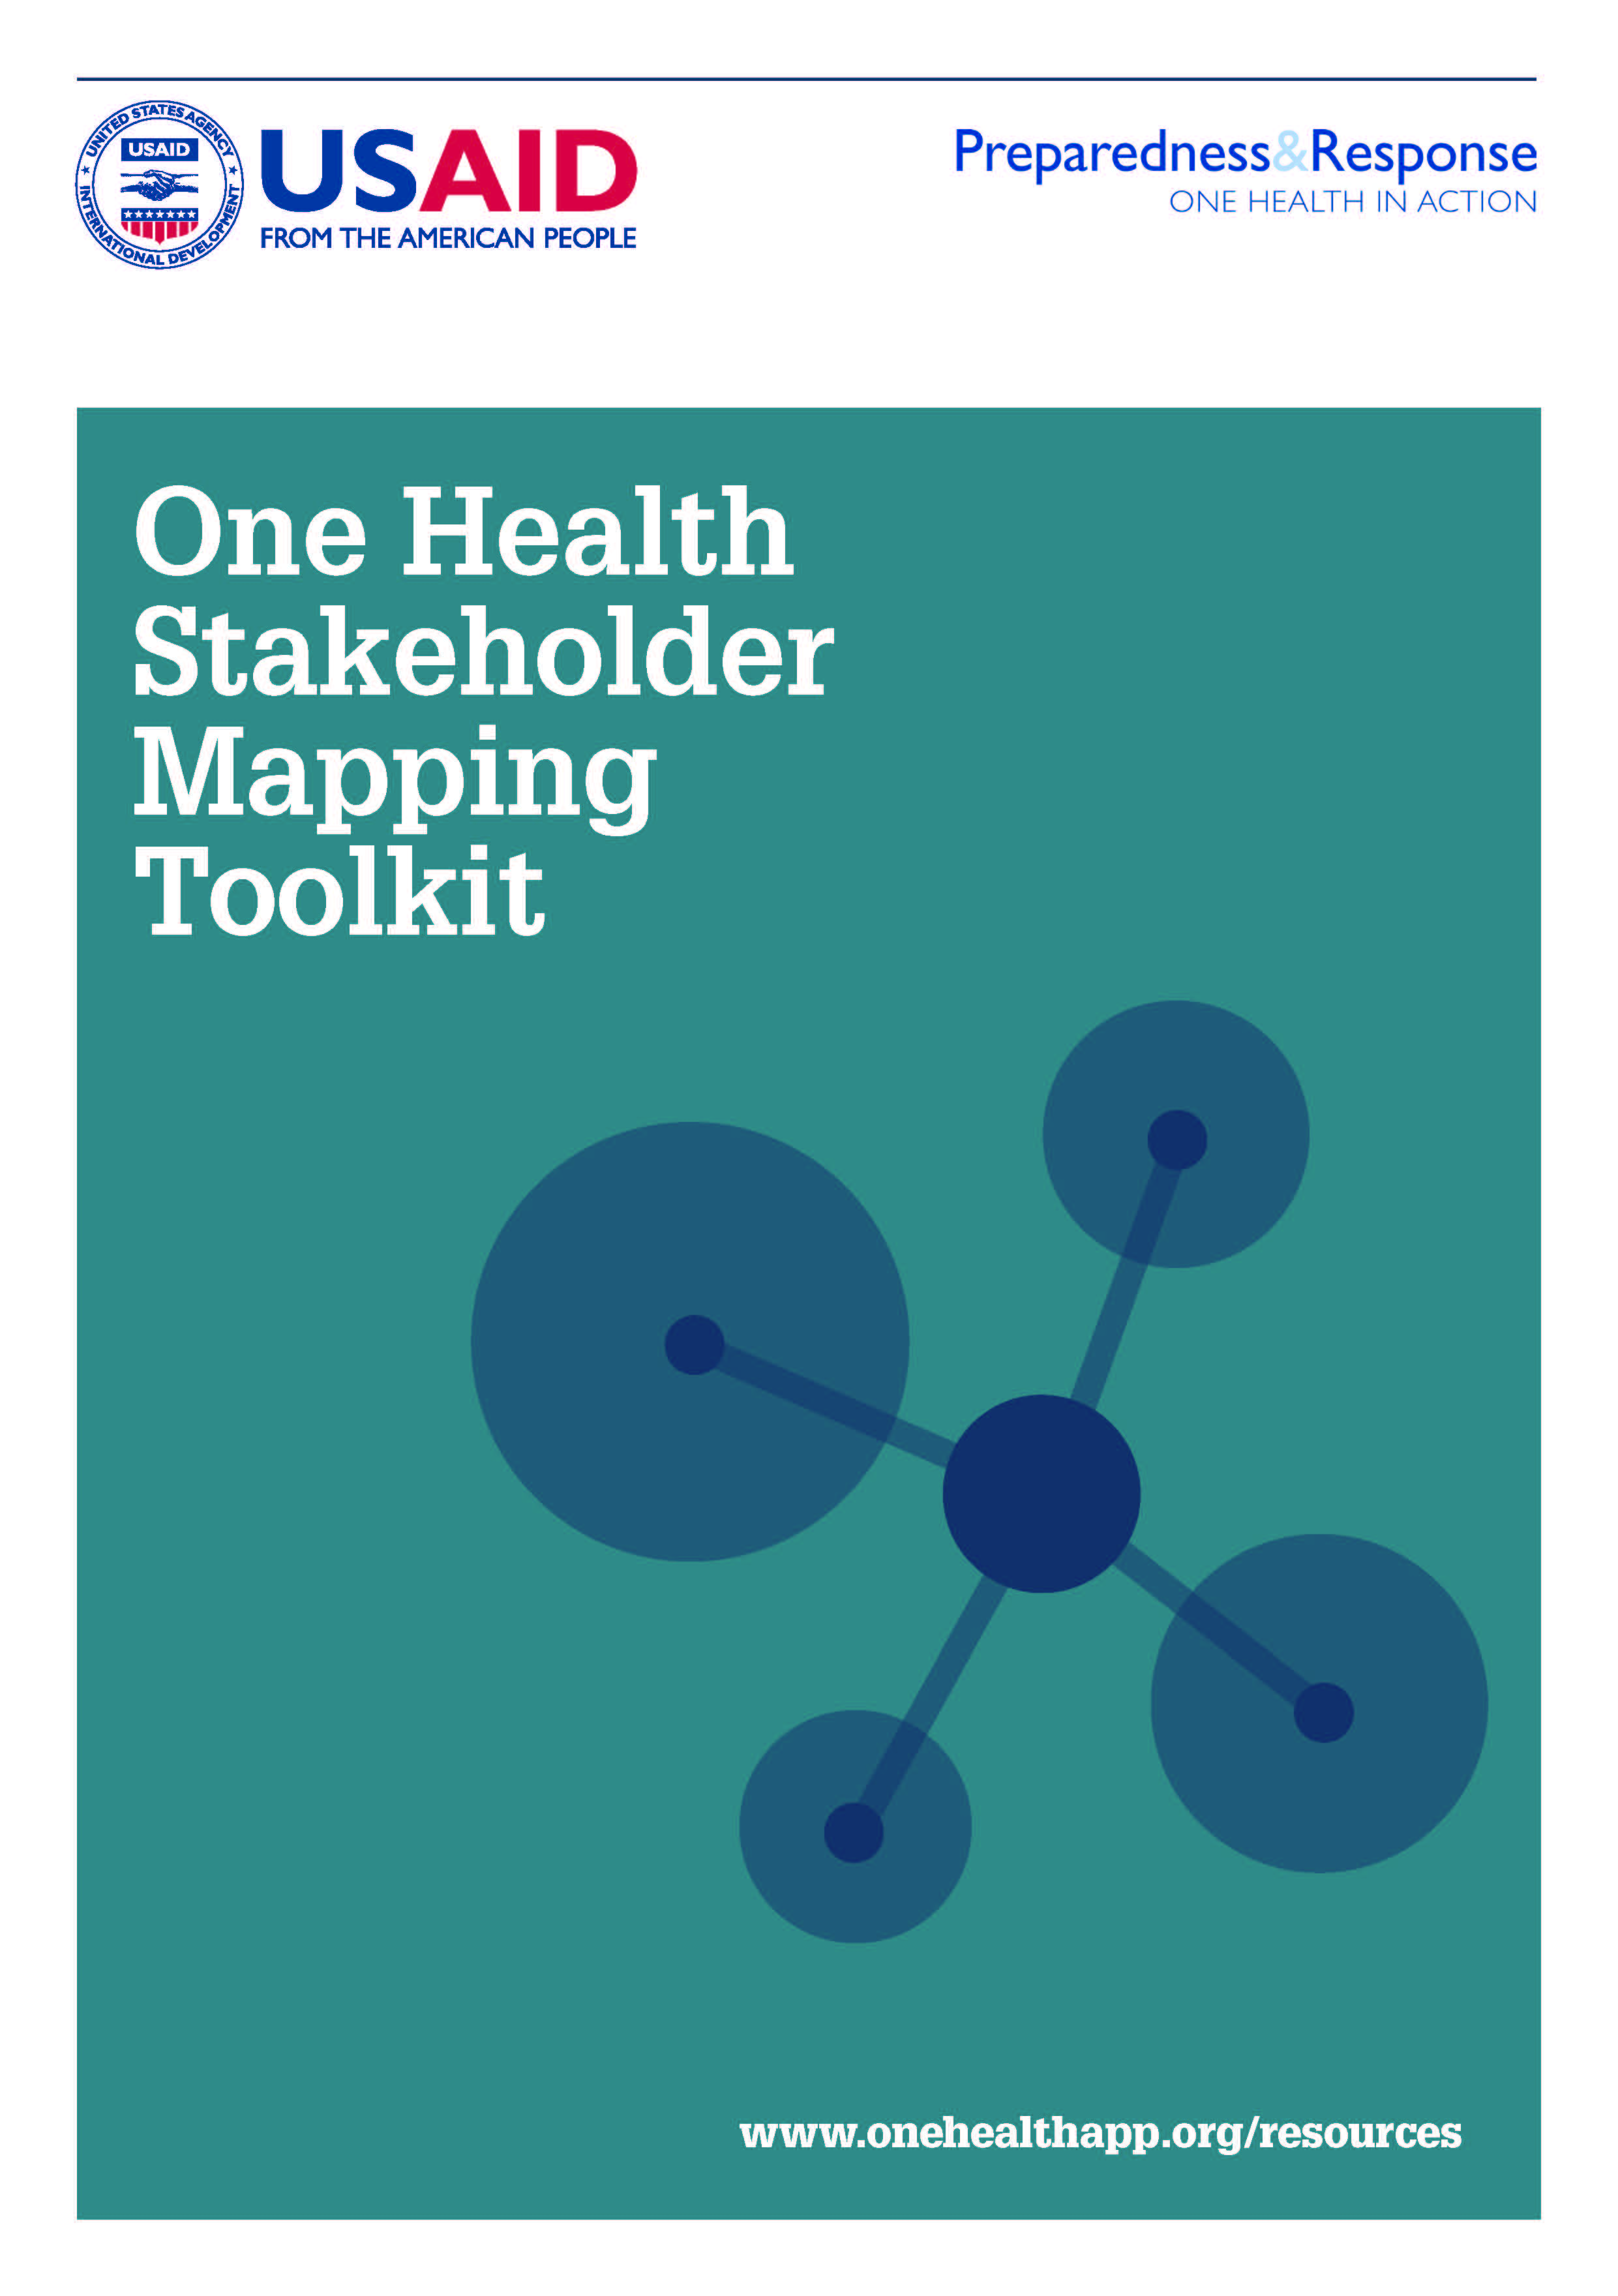 Stakeholder Mapping Toolkit Overview